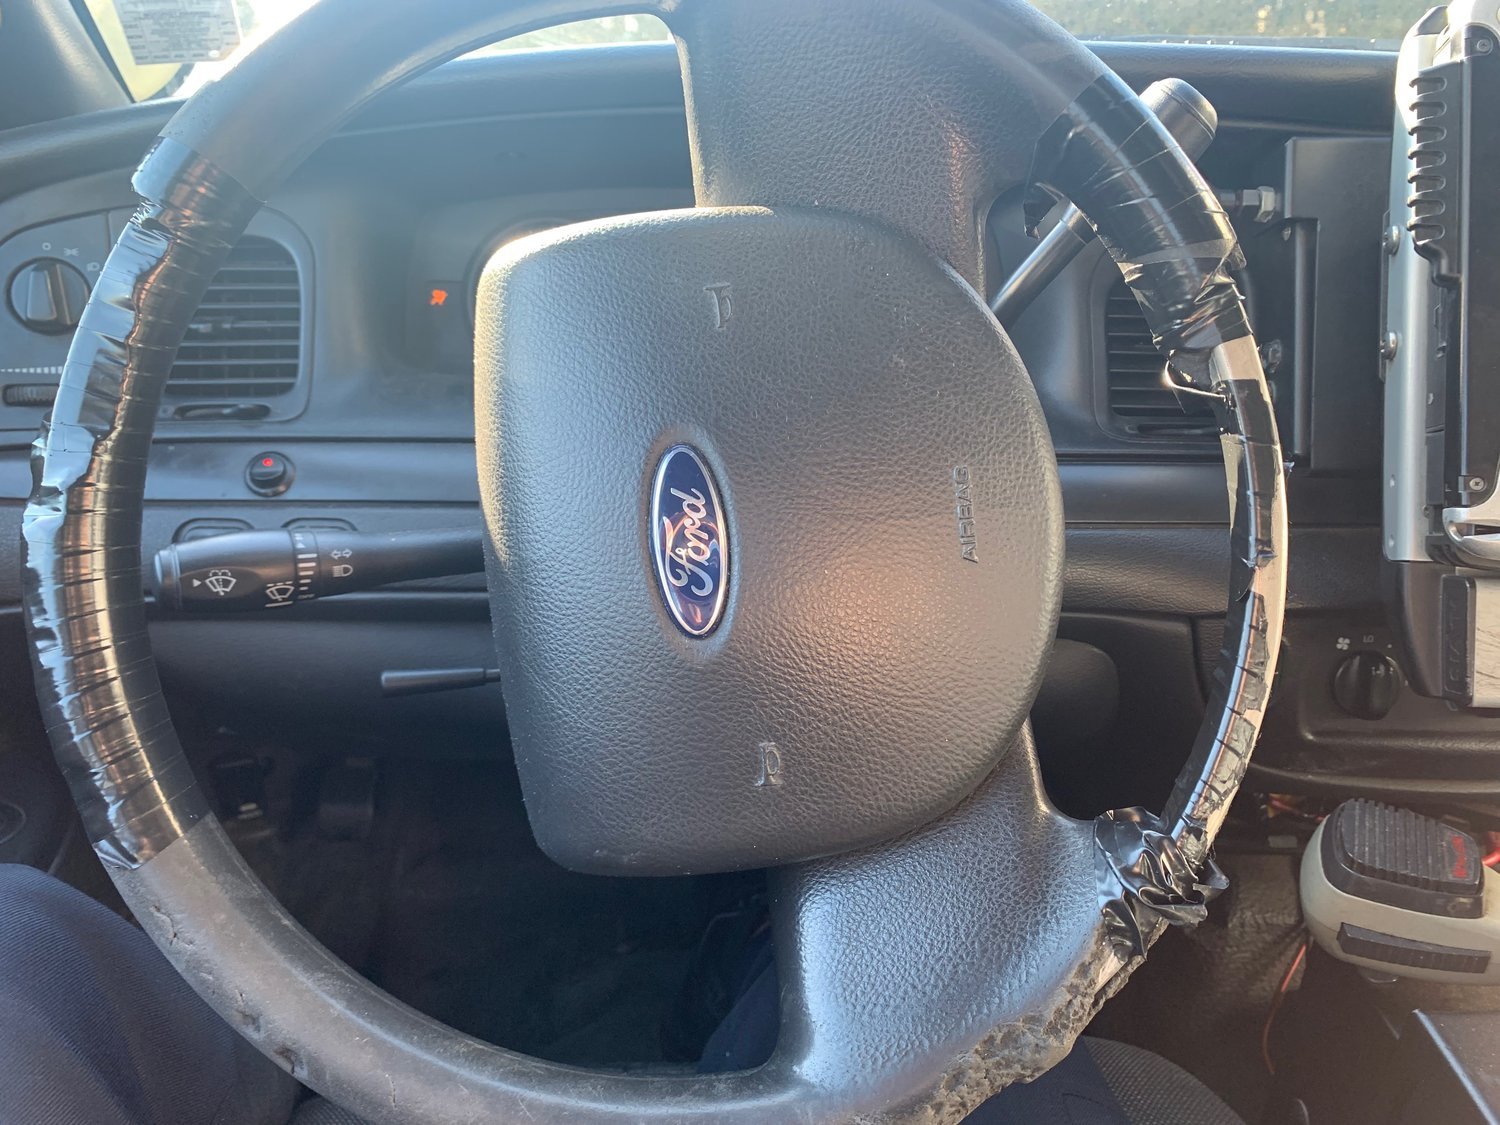 A deteriorated steering wheel had to be wrapped with electrical tape.